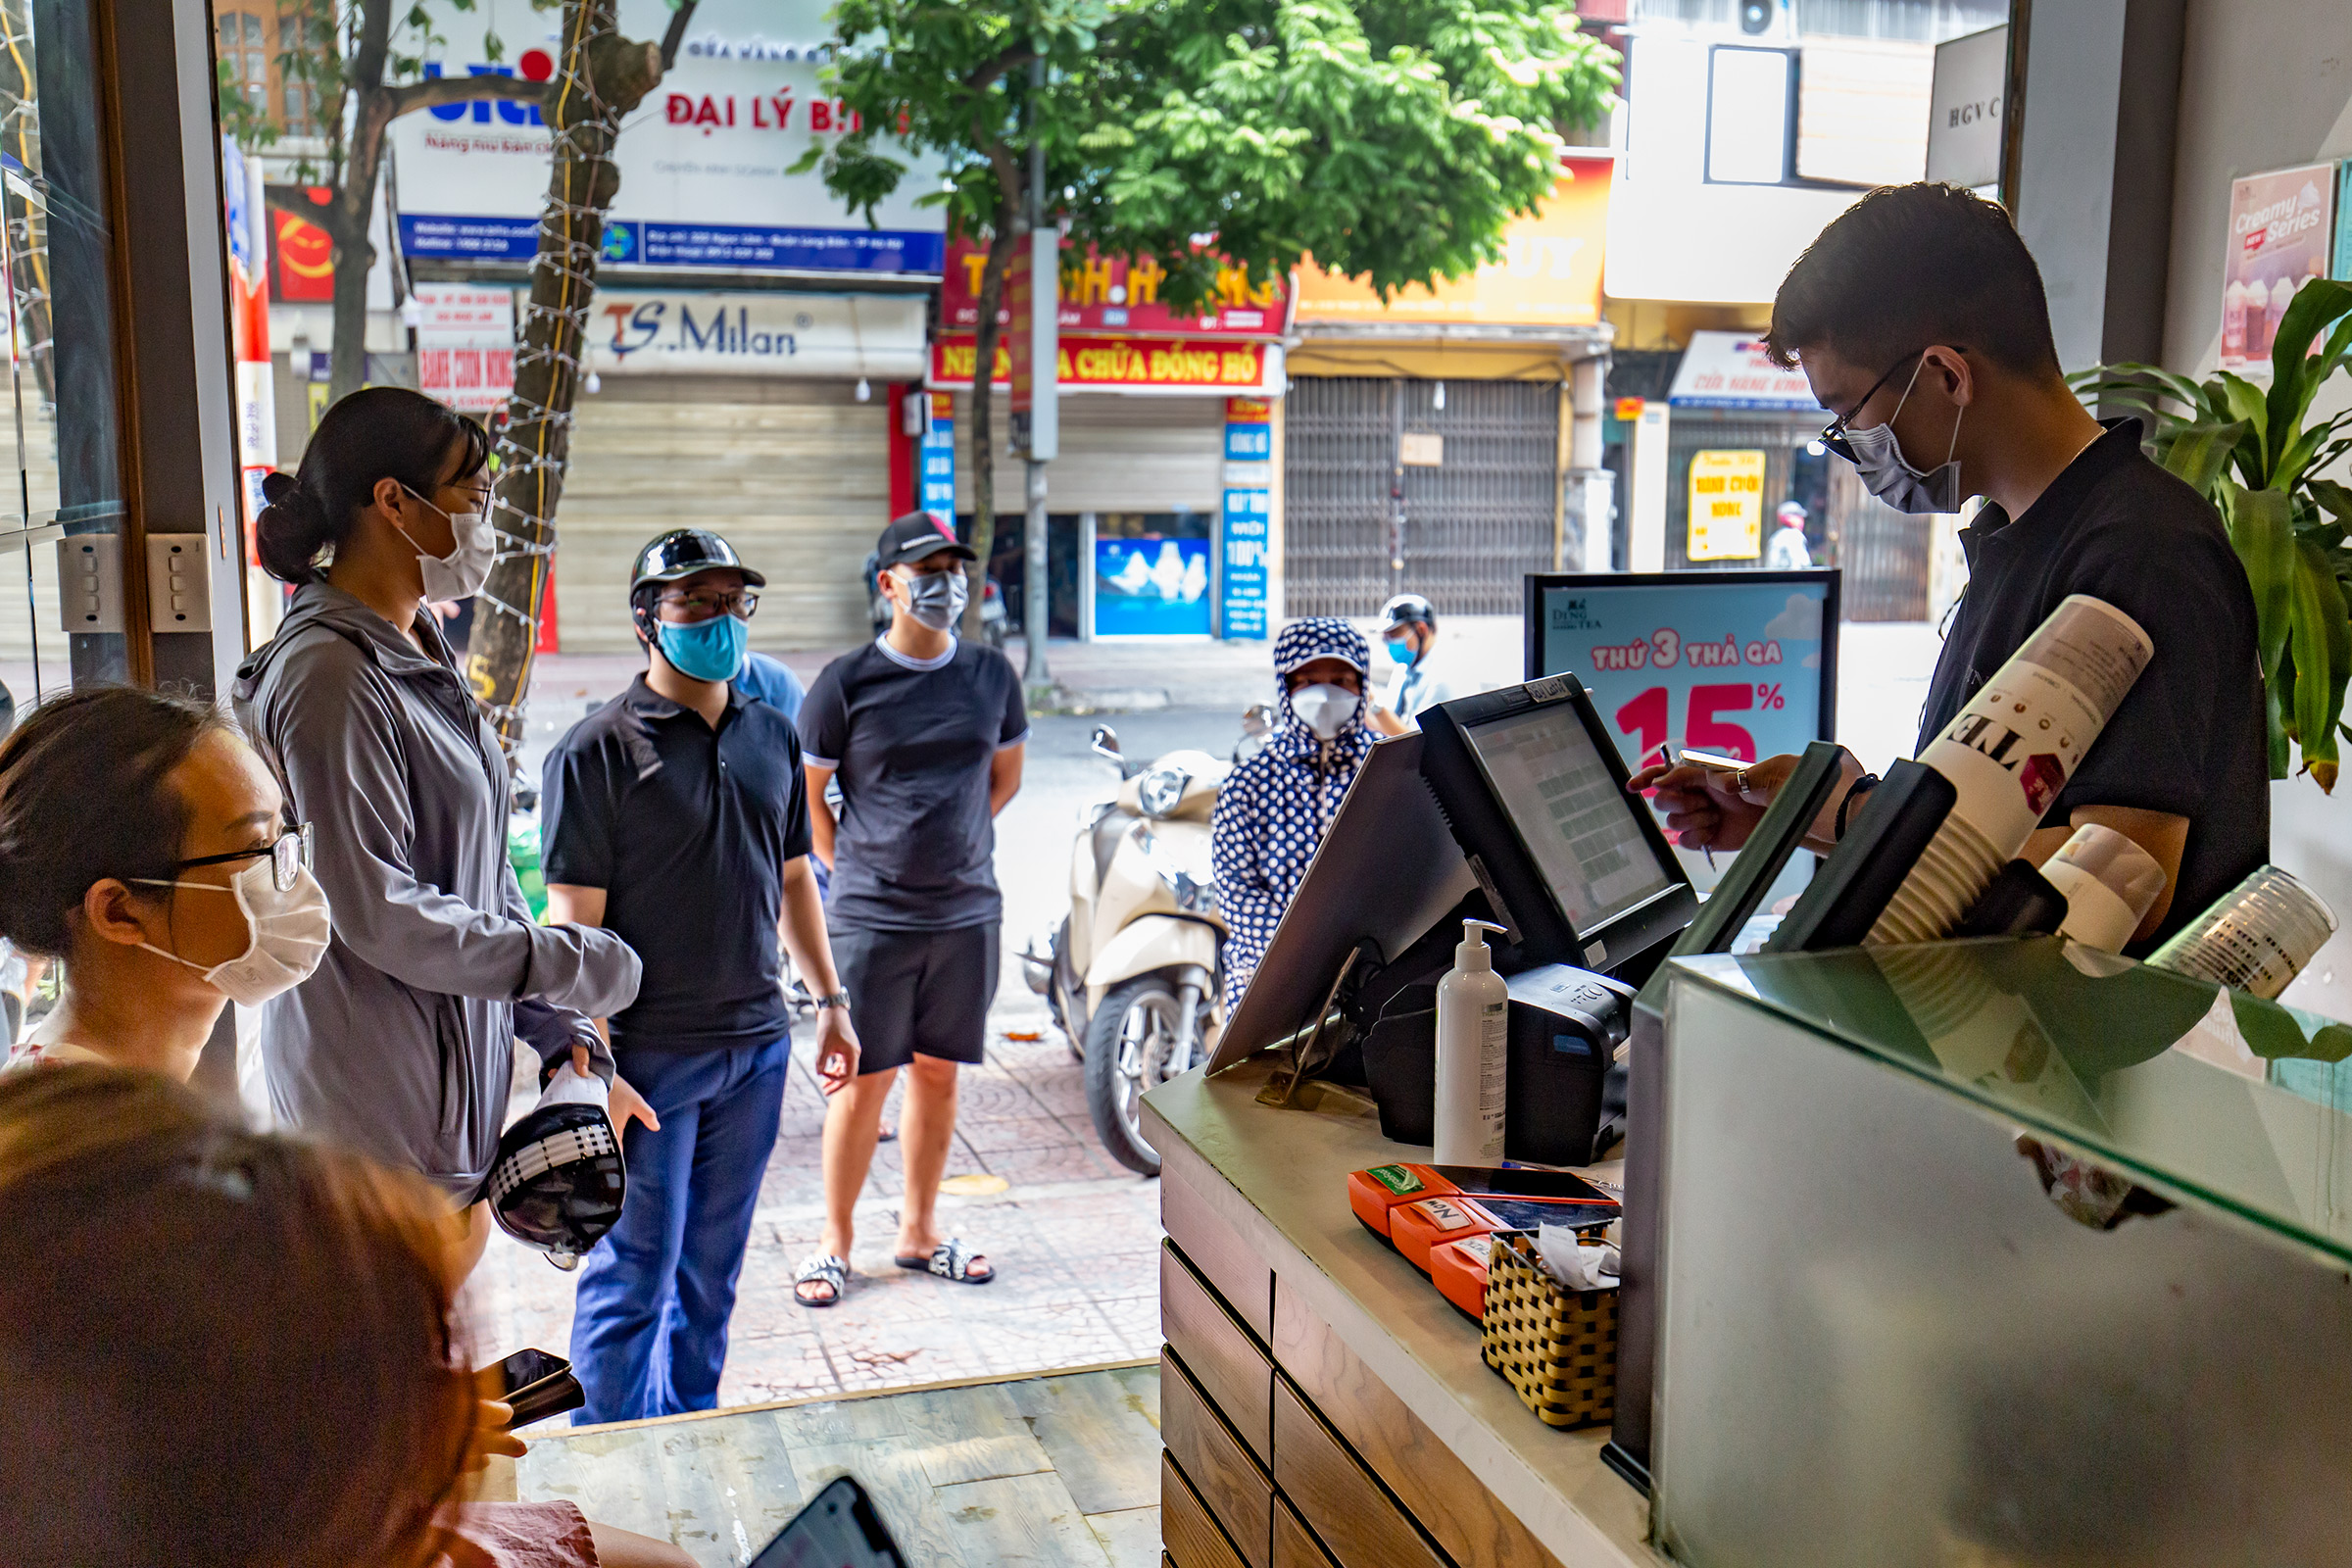 Customers also lined up outside a milk tea shop about one kilometer away.The capital has recorded 4,053 Covid-19 cases in the fourth wave that began in late April, including 41 on Monday.